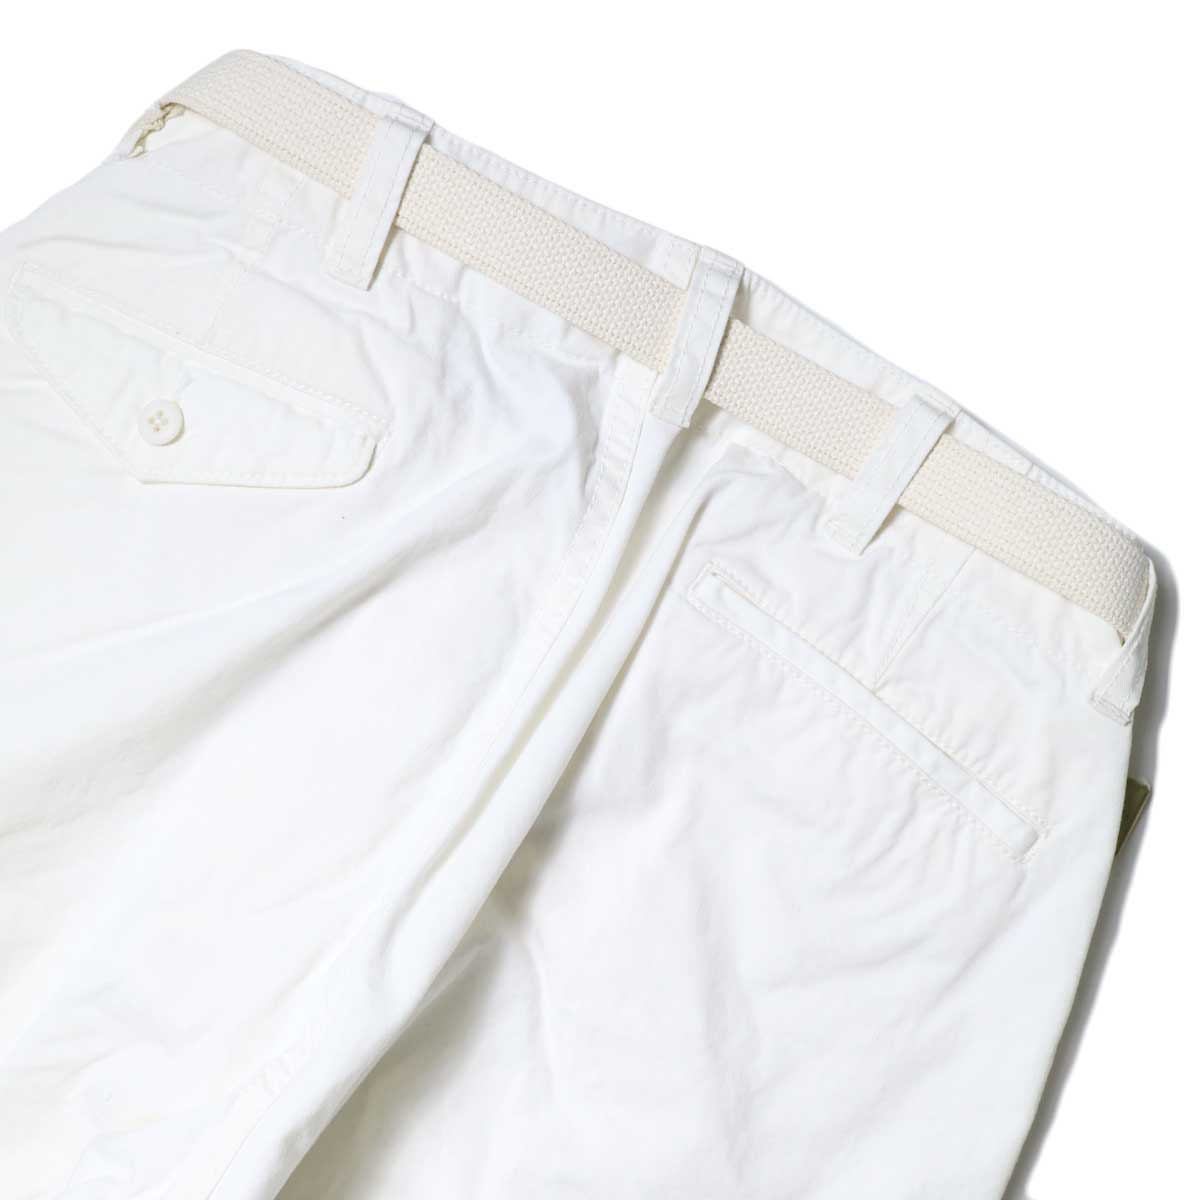 Master&Co. / CUT OFF PANTS (White) 背面アップ